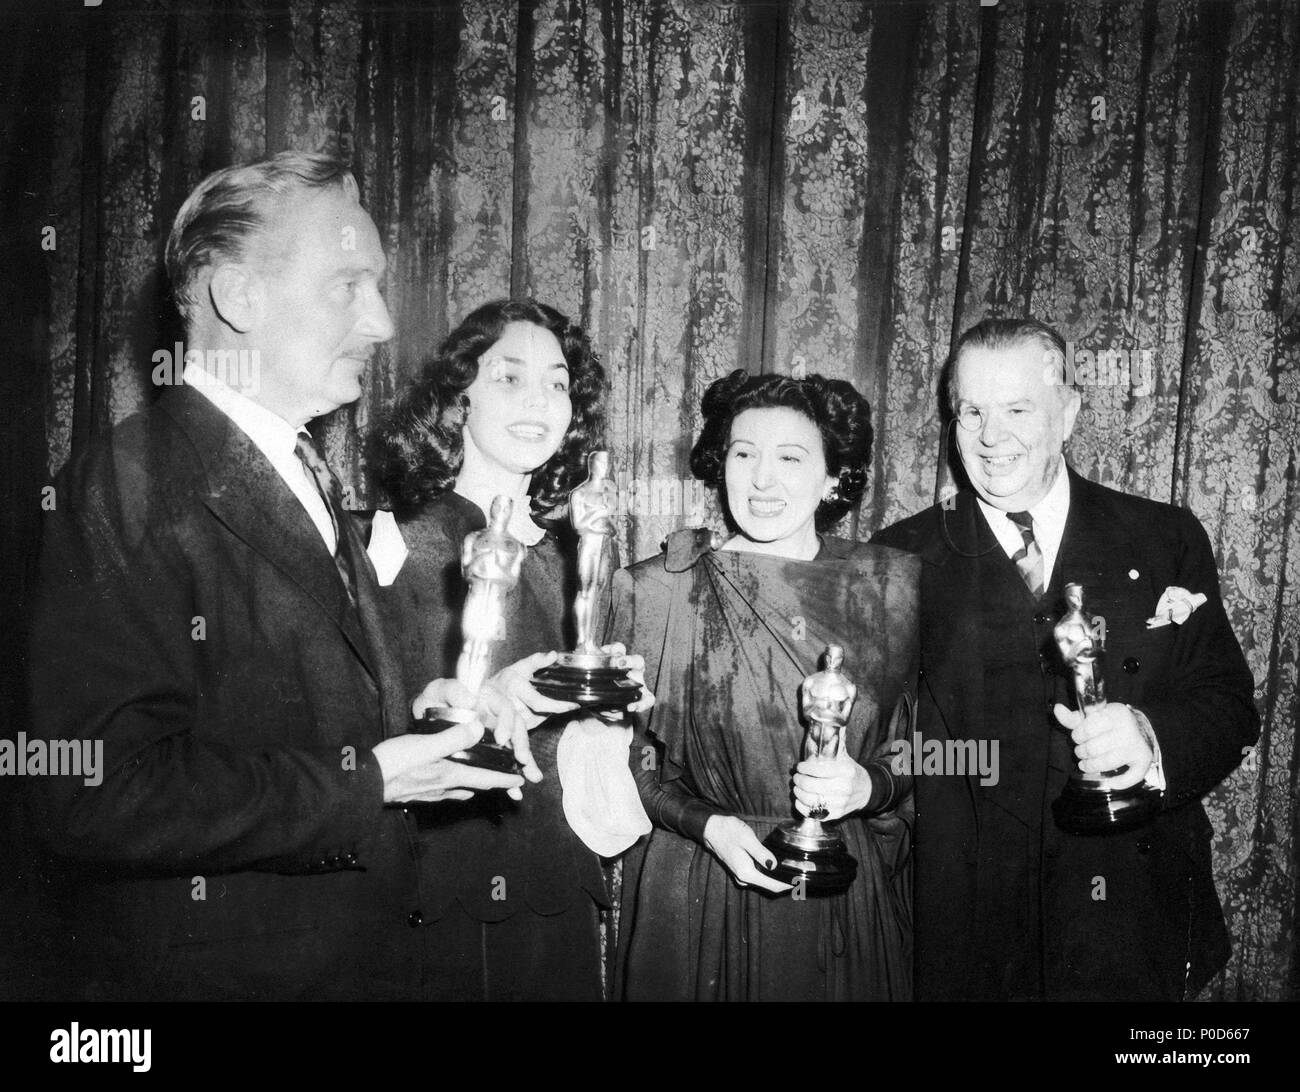 Description: The 16th Academy Awards / 1944.   Paul Lukas, best actor for 'Watch on the Rhine'. Jennifer Jones, best actress for 'The Song of Bernadette'. Katina Paxinou, best actress in a supporting role for 'For Whom the Bells Tolls'. Charles Coburn, best actor in a supporting role for  'The More the Merrier'..  Year: 1944.  Stars: PAUL LUKAS; CHARLES COBURN; KATINA PAXINOU; JENNIFER JONES. - Stock Image